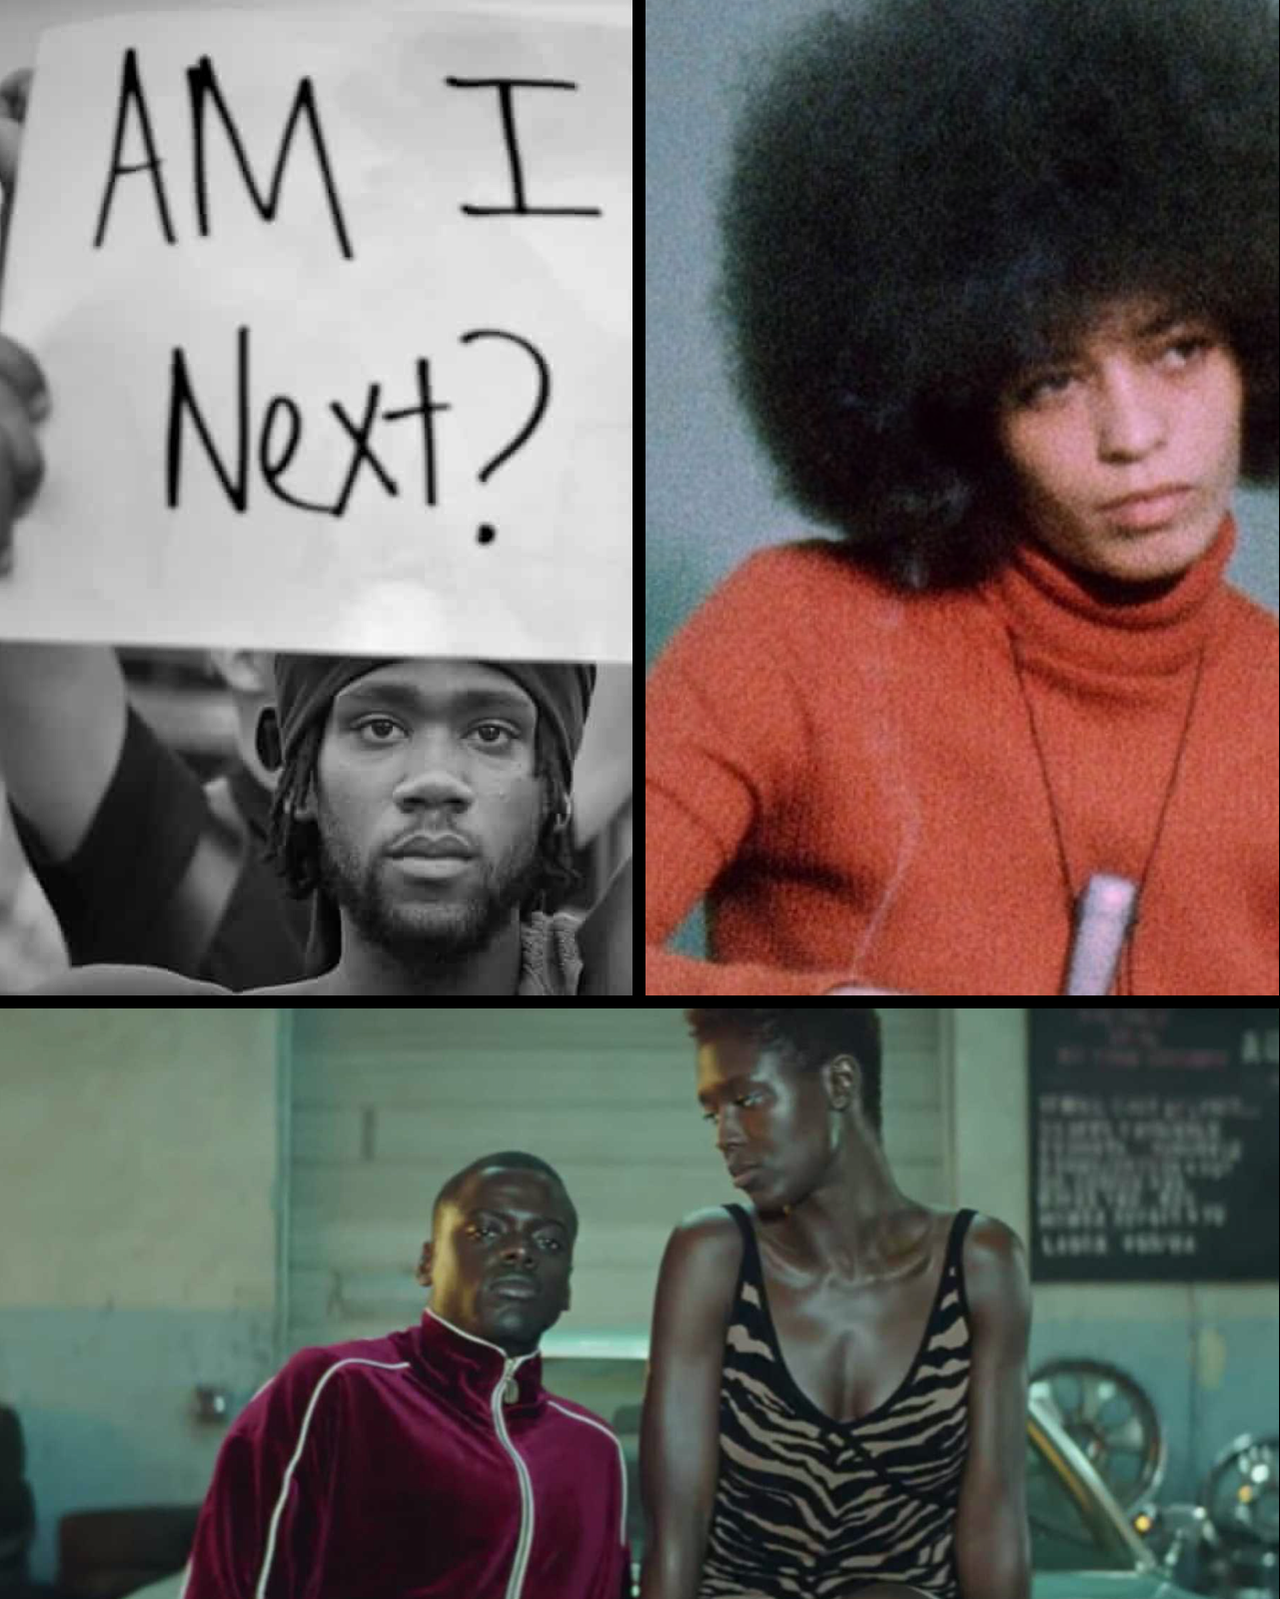 30 Films that help make sense of this time and inform on issues of race and racism.